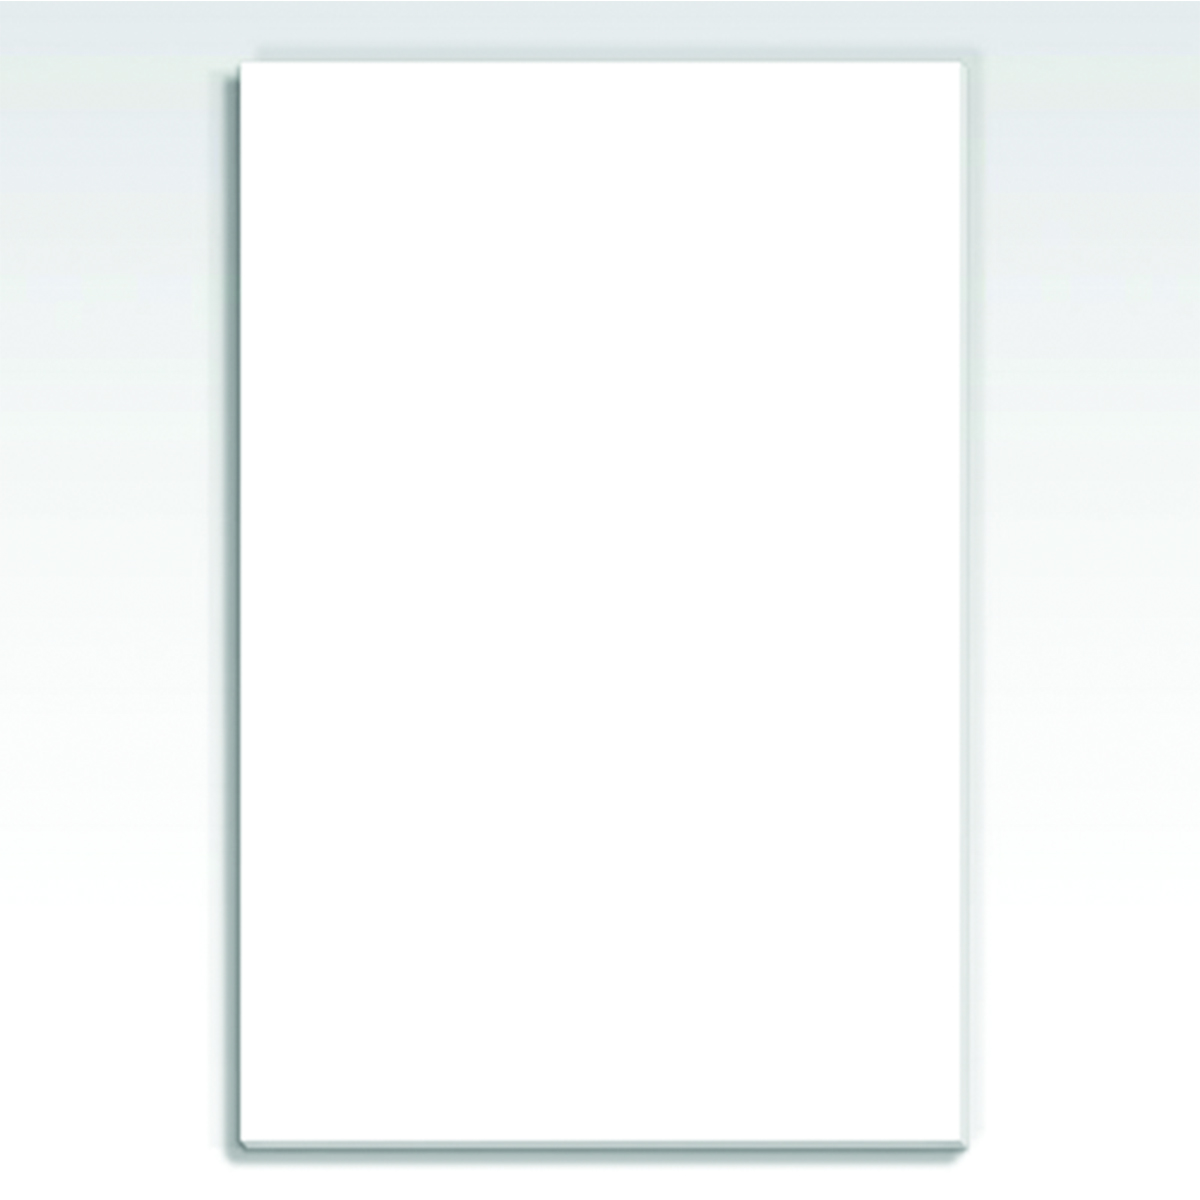 """White Non Adhesive Scratch Pads (50 Sheets, 5""""W x 7""""H)"""